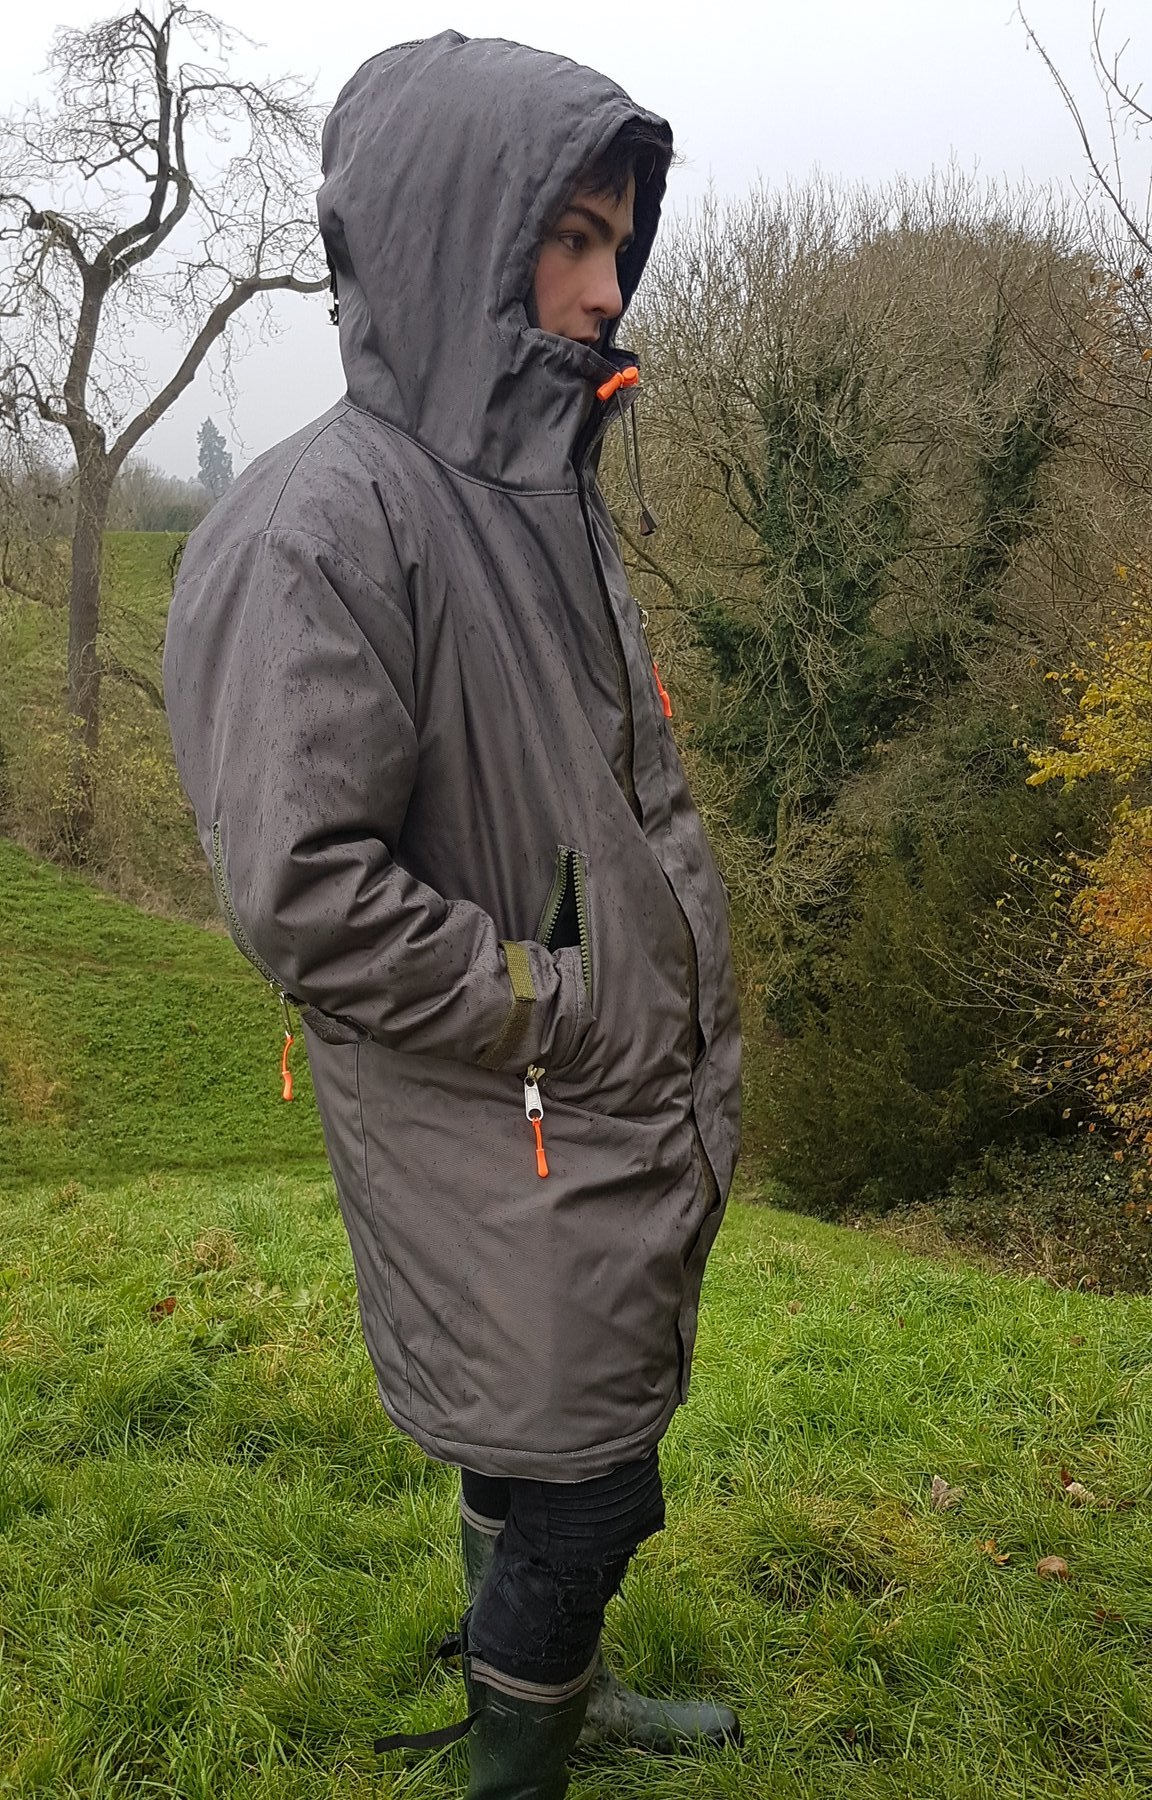 Image of man in the countryside wearing the ROOF coat bag, with the hood up